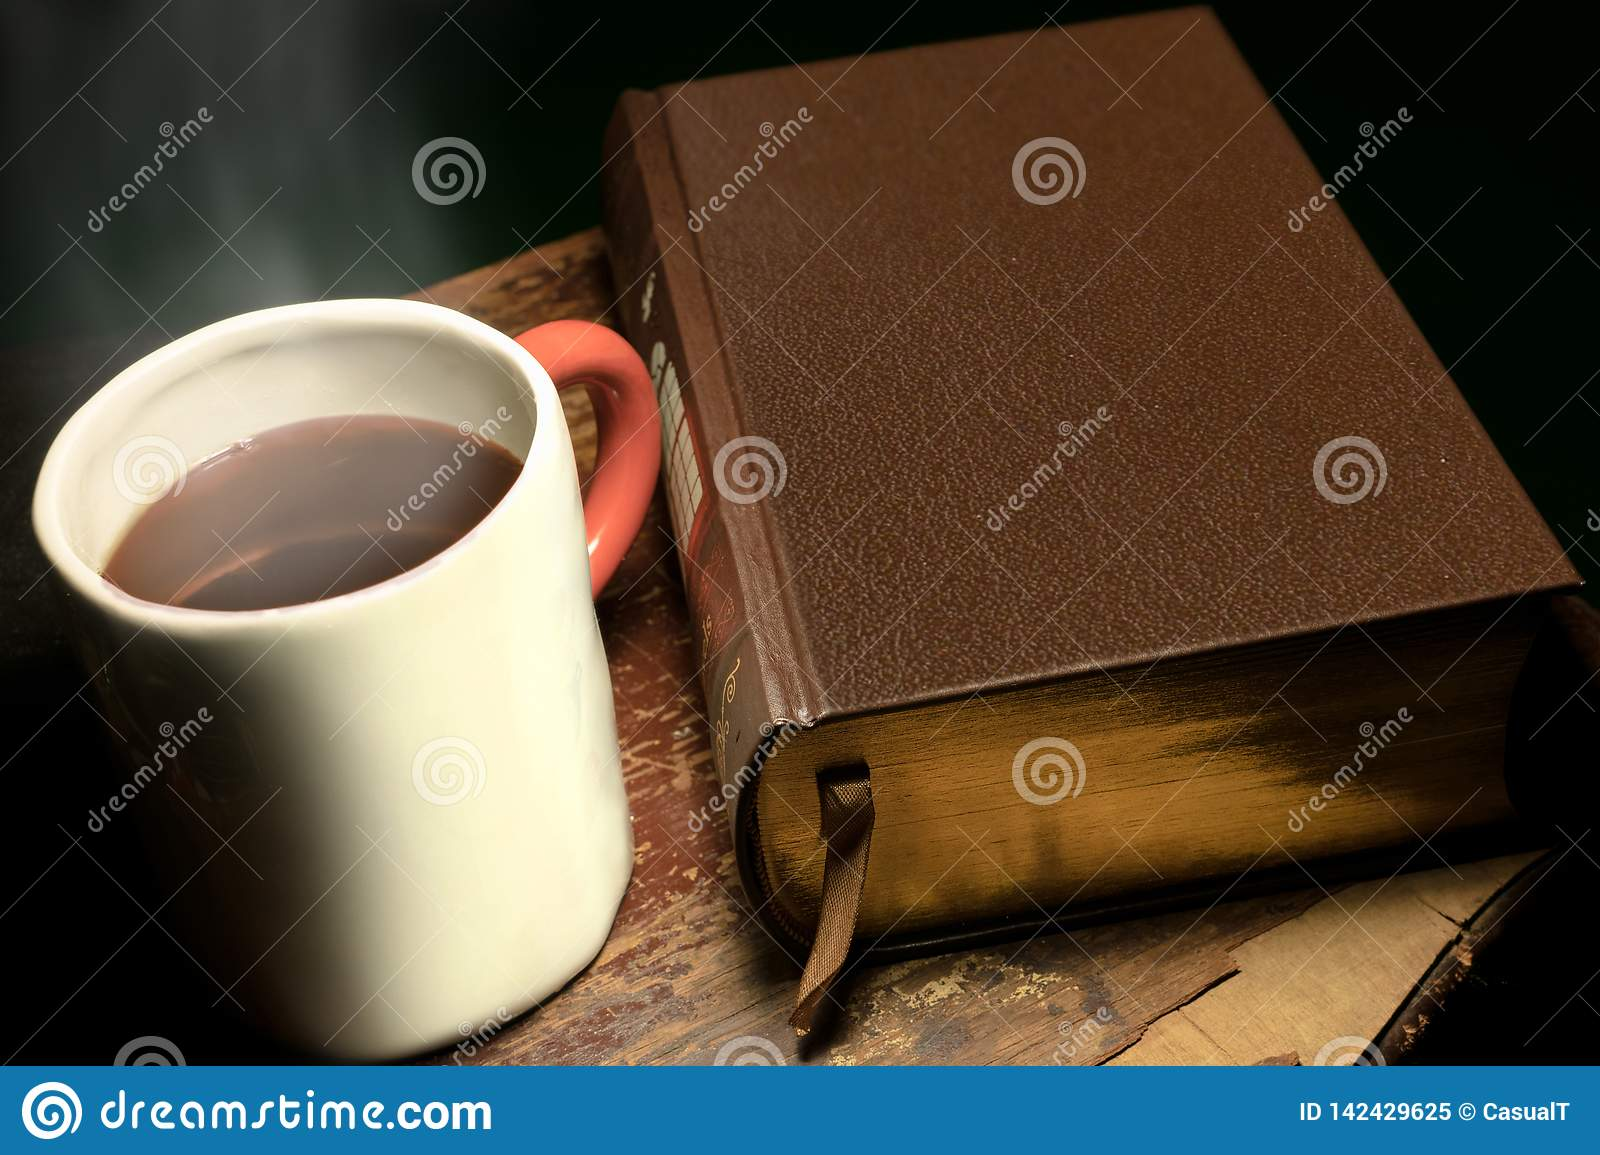 A mug with steaming hot tea or coffee placed next to a big leather-bound book, on an old and worn wooden table